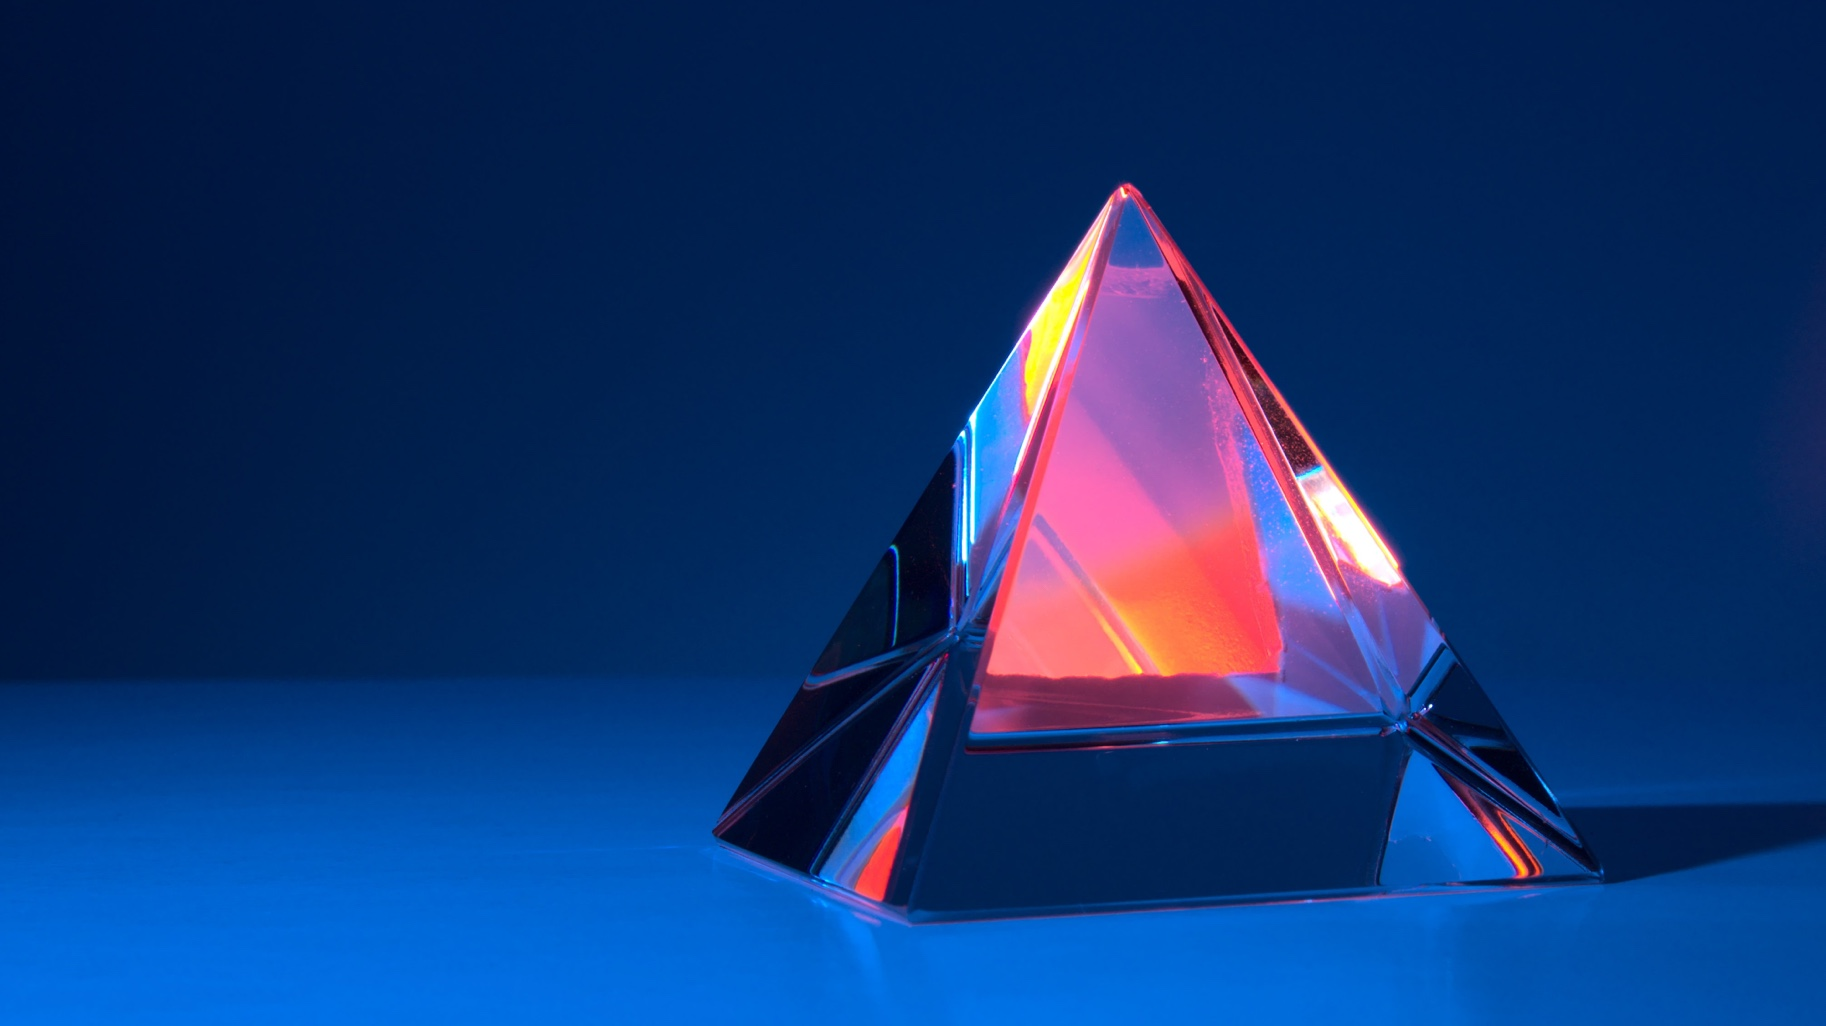 Illustration d'un triangle bleu et rouge